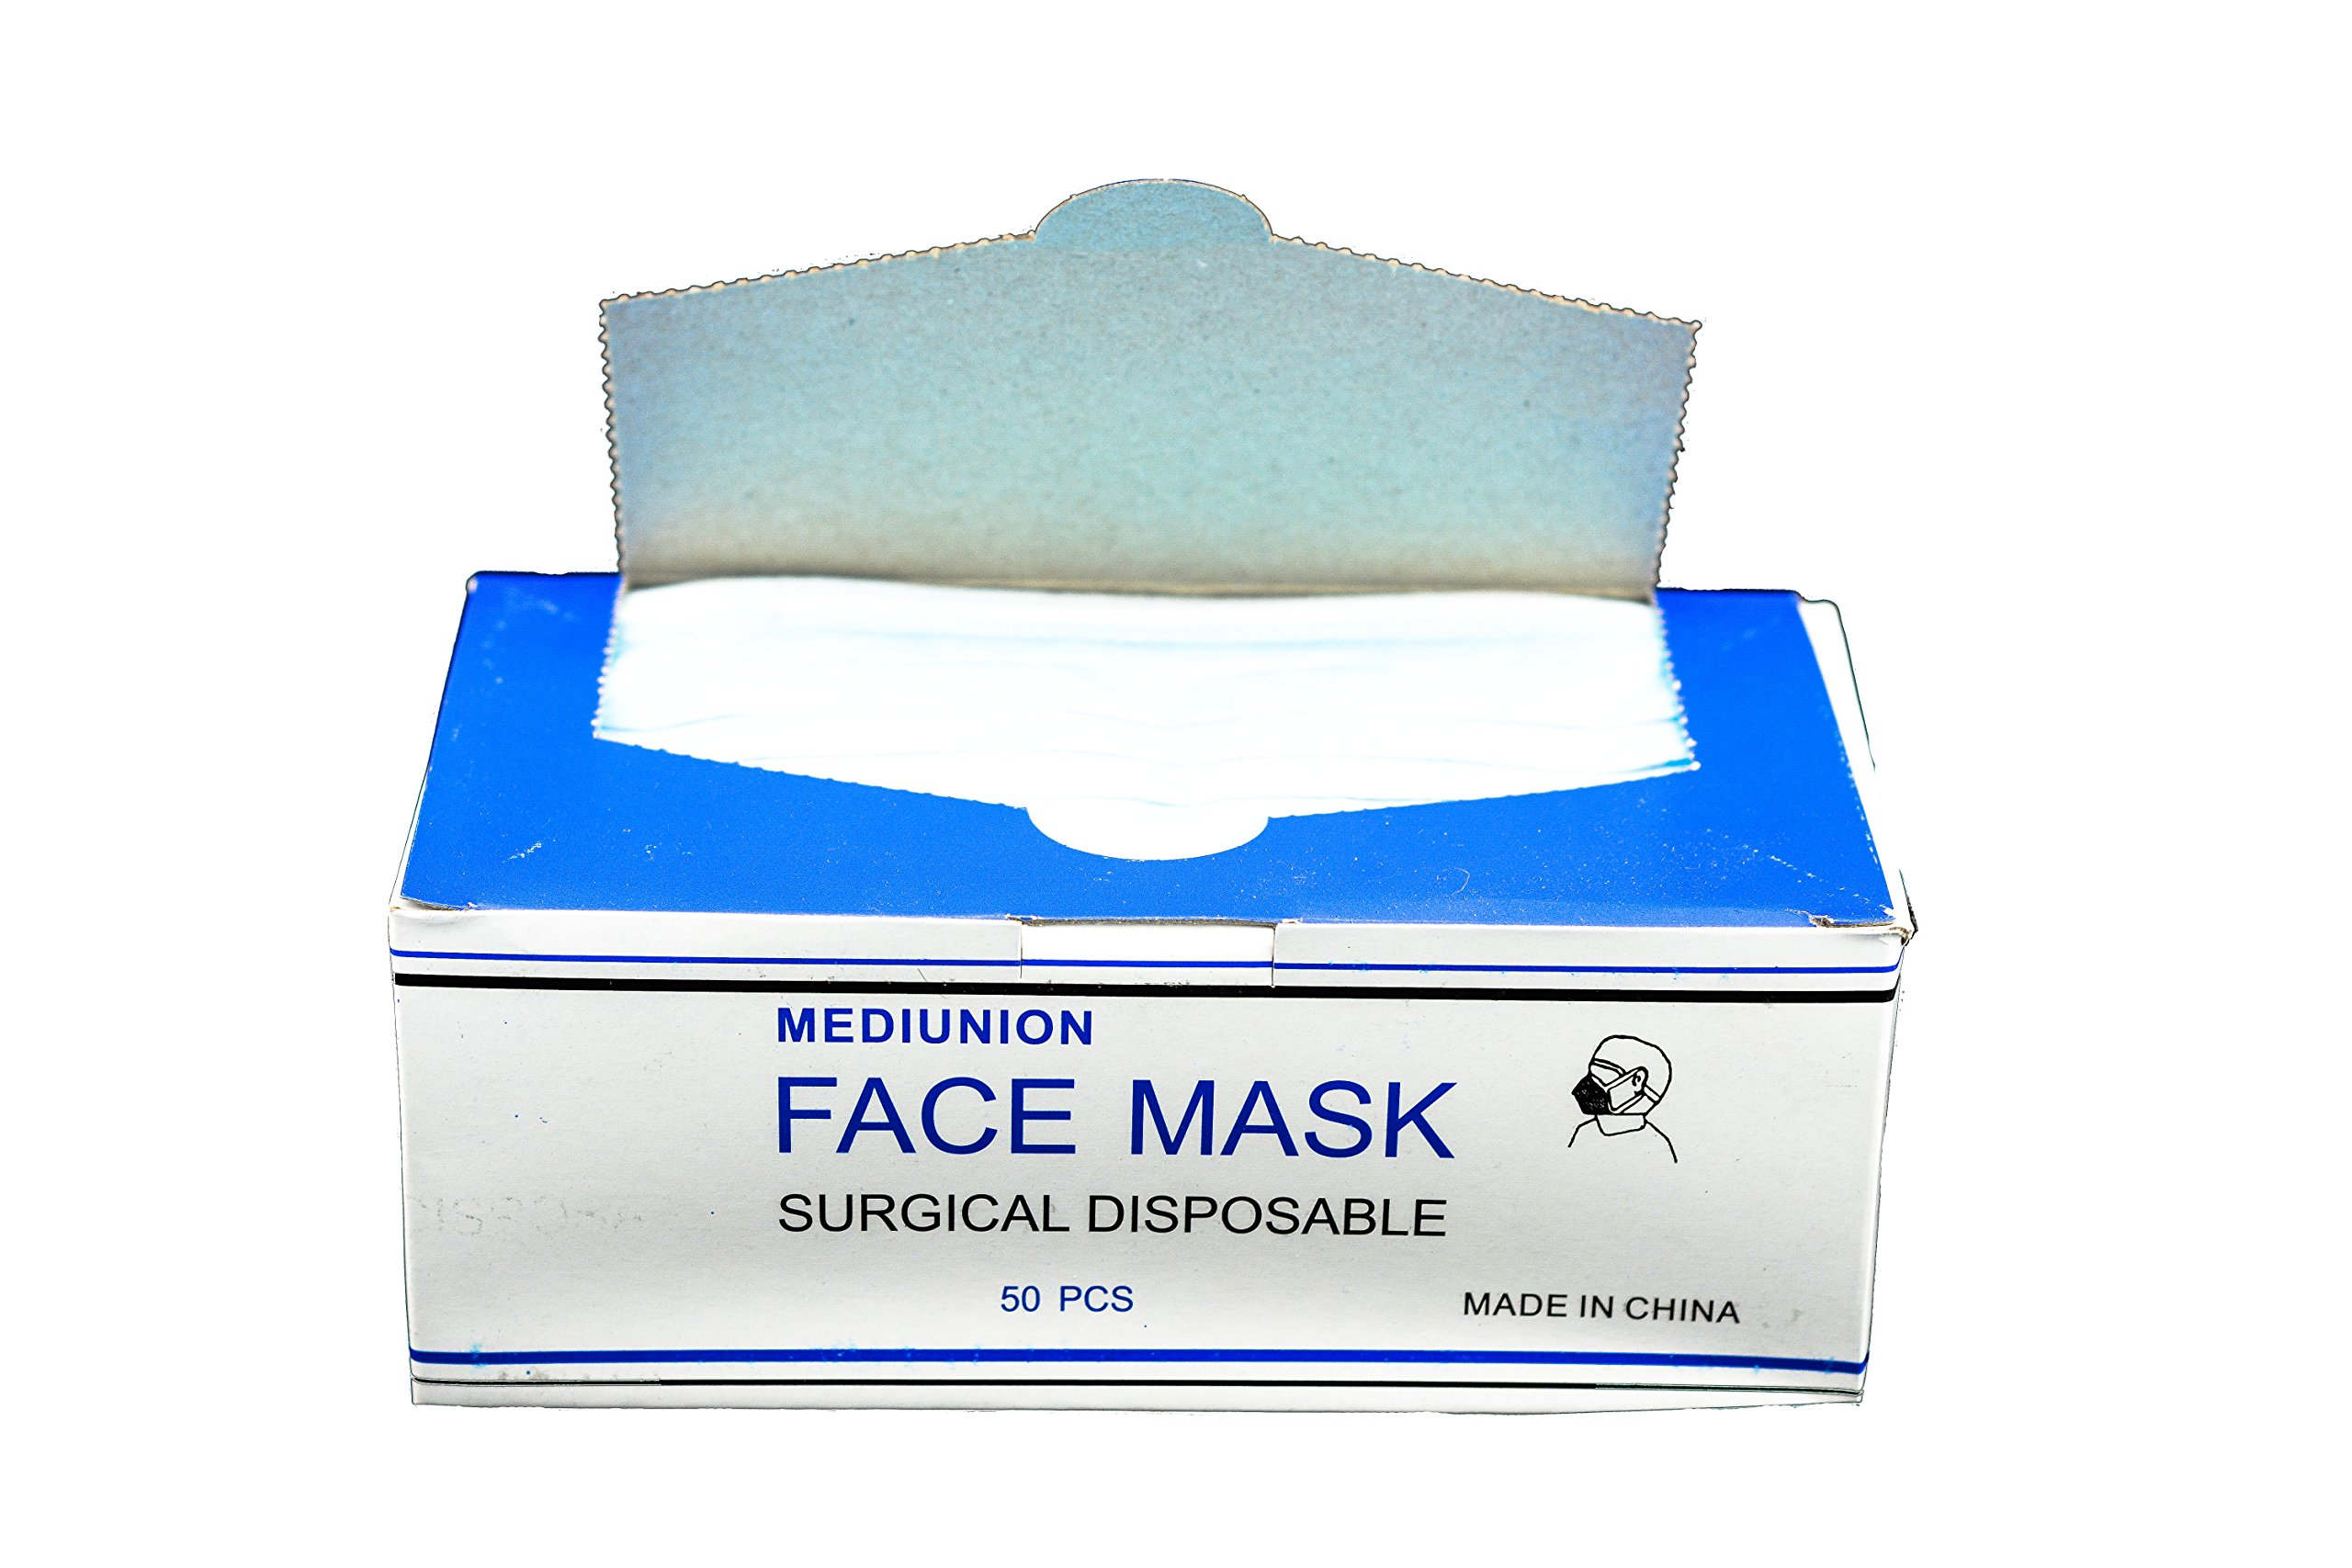 DISPOSABLE EAR LOOP FACE MASK MEDICAL DENTAL 1 CASE OF 2000 MASKS (PFE Class I Flammability 80 mmHg Fluid Resistance to Blood) by P&P Medical Surgical